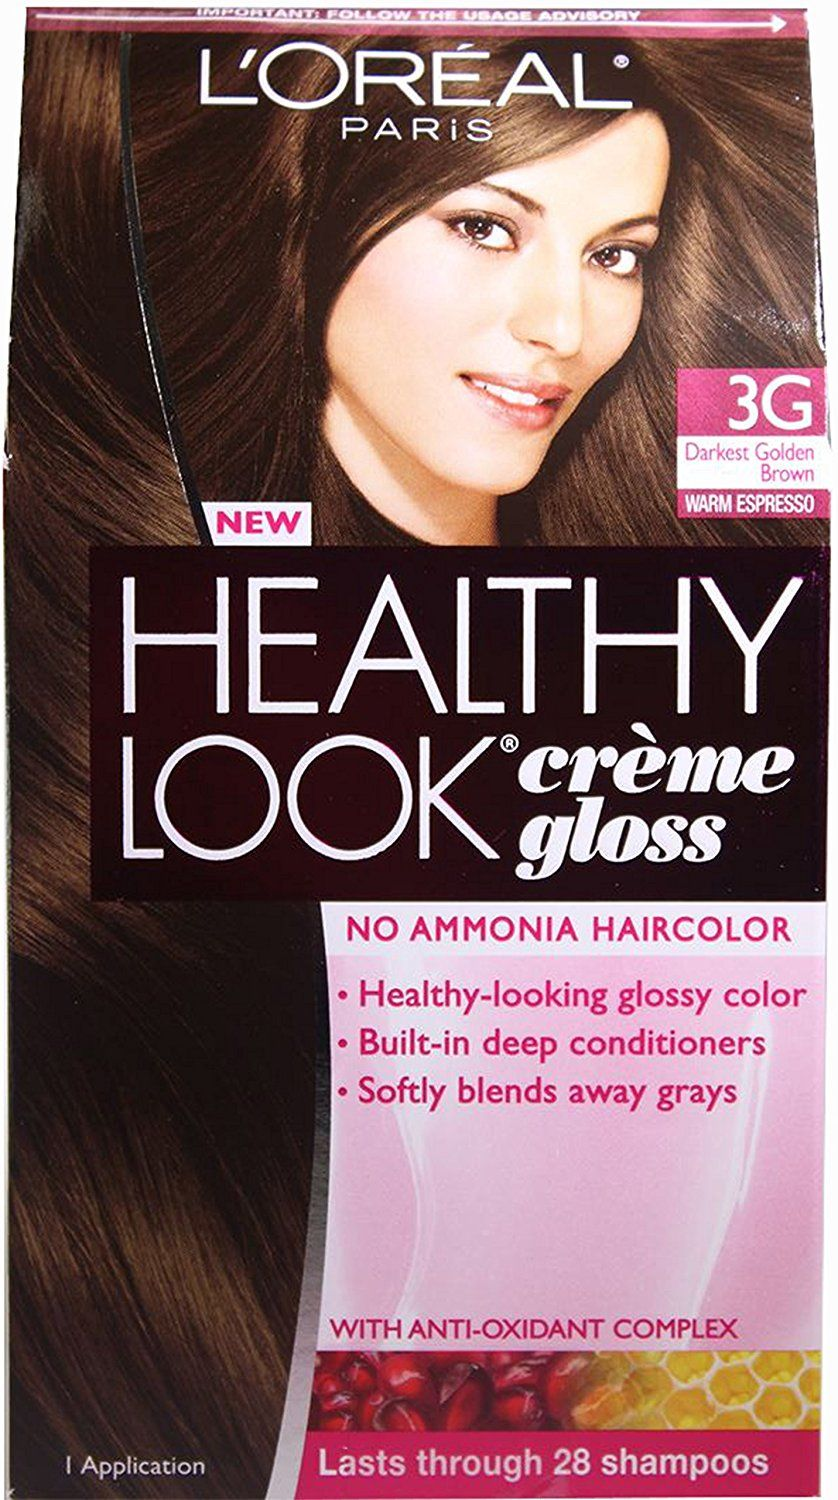 L Oreal Paris Healthy Look Creme Gloss Pack Of 3 Darkest Golden Brown 3g Read More At The Image Link Loreal Paris Loreal Hair Color Chart